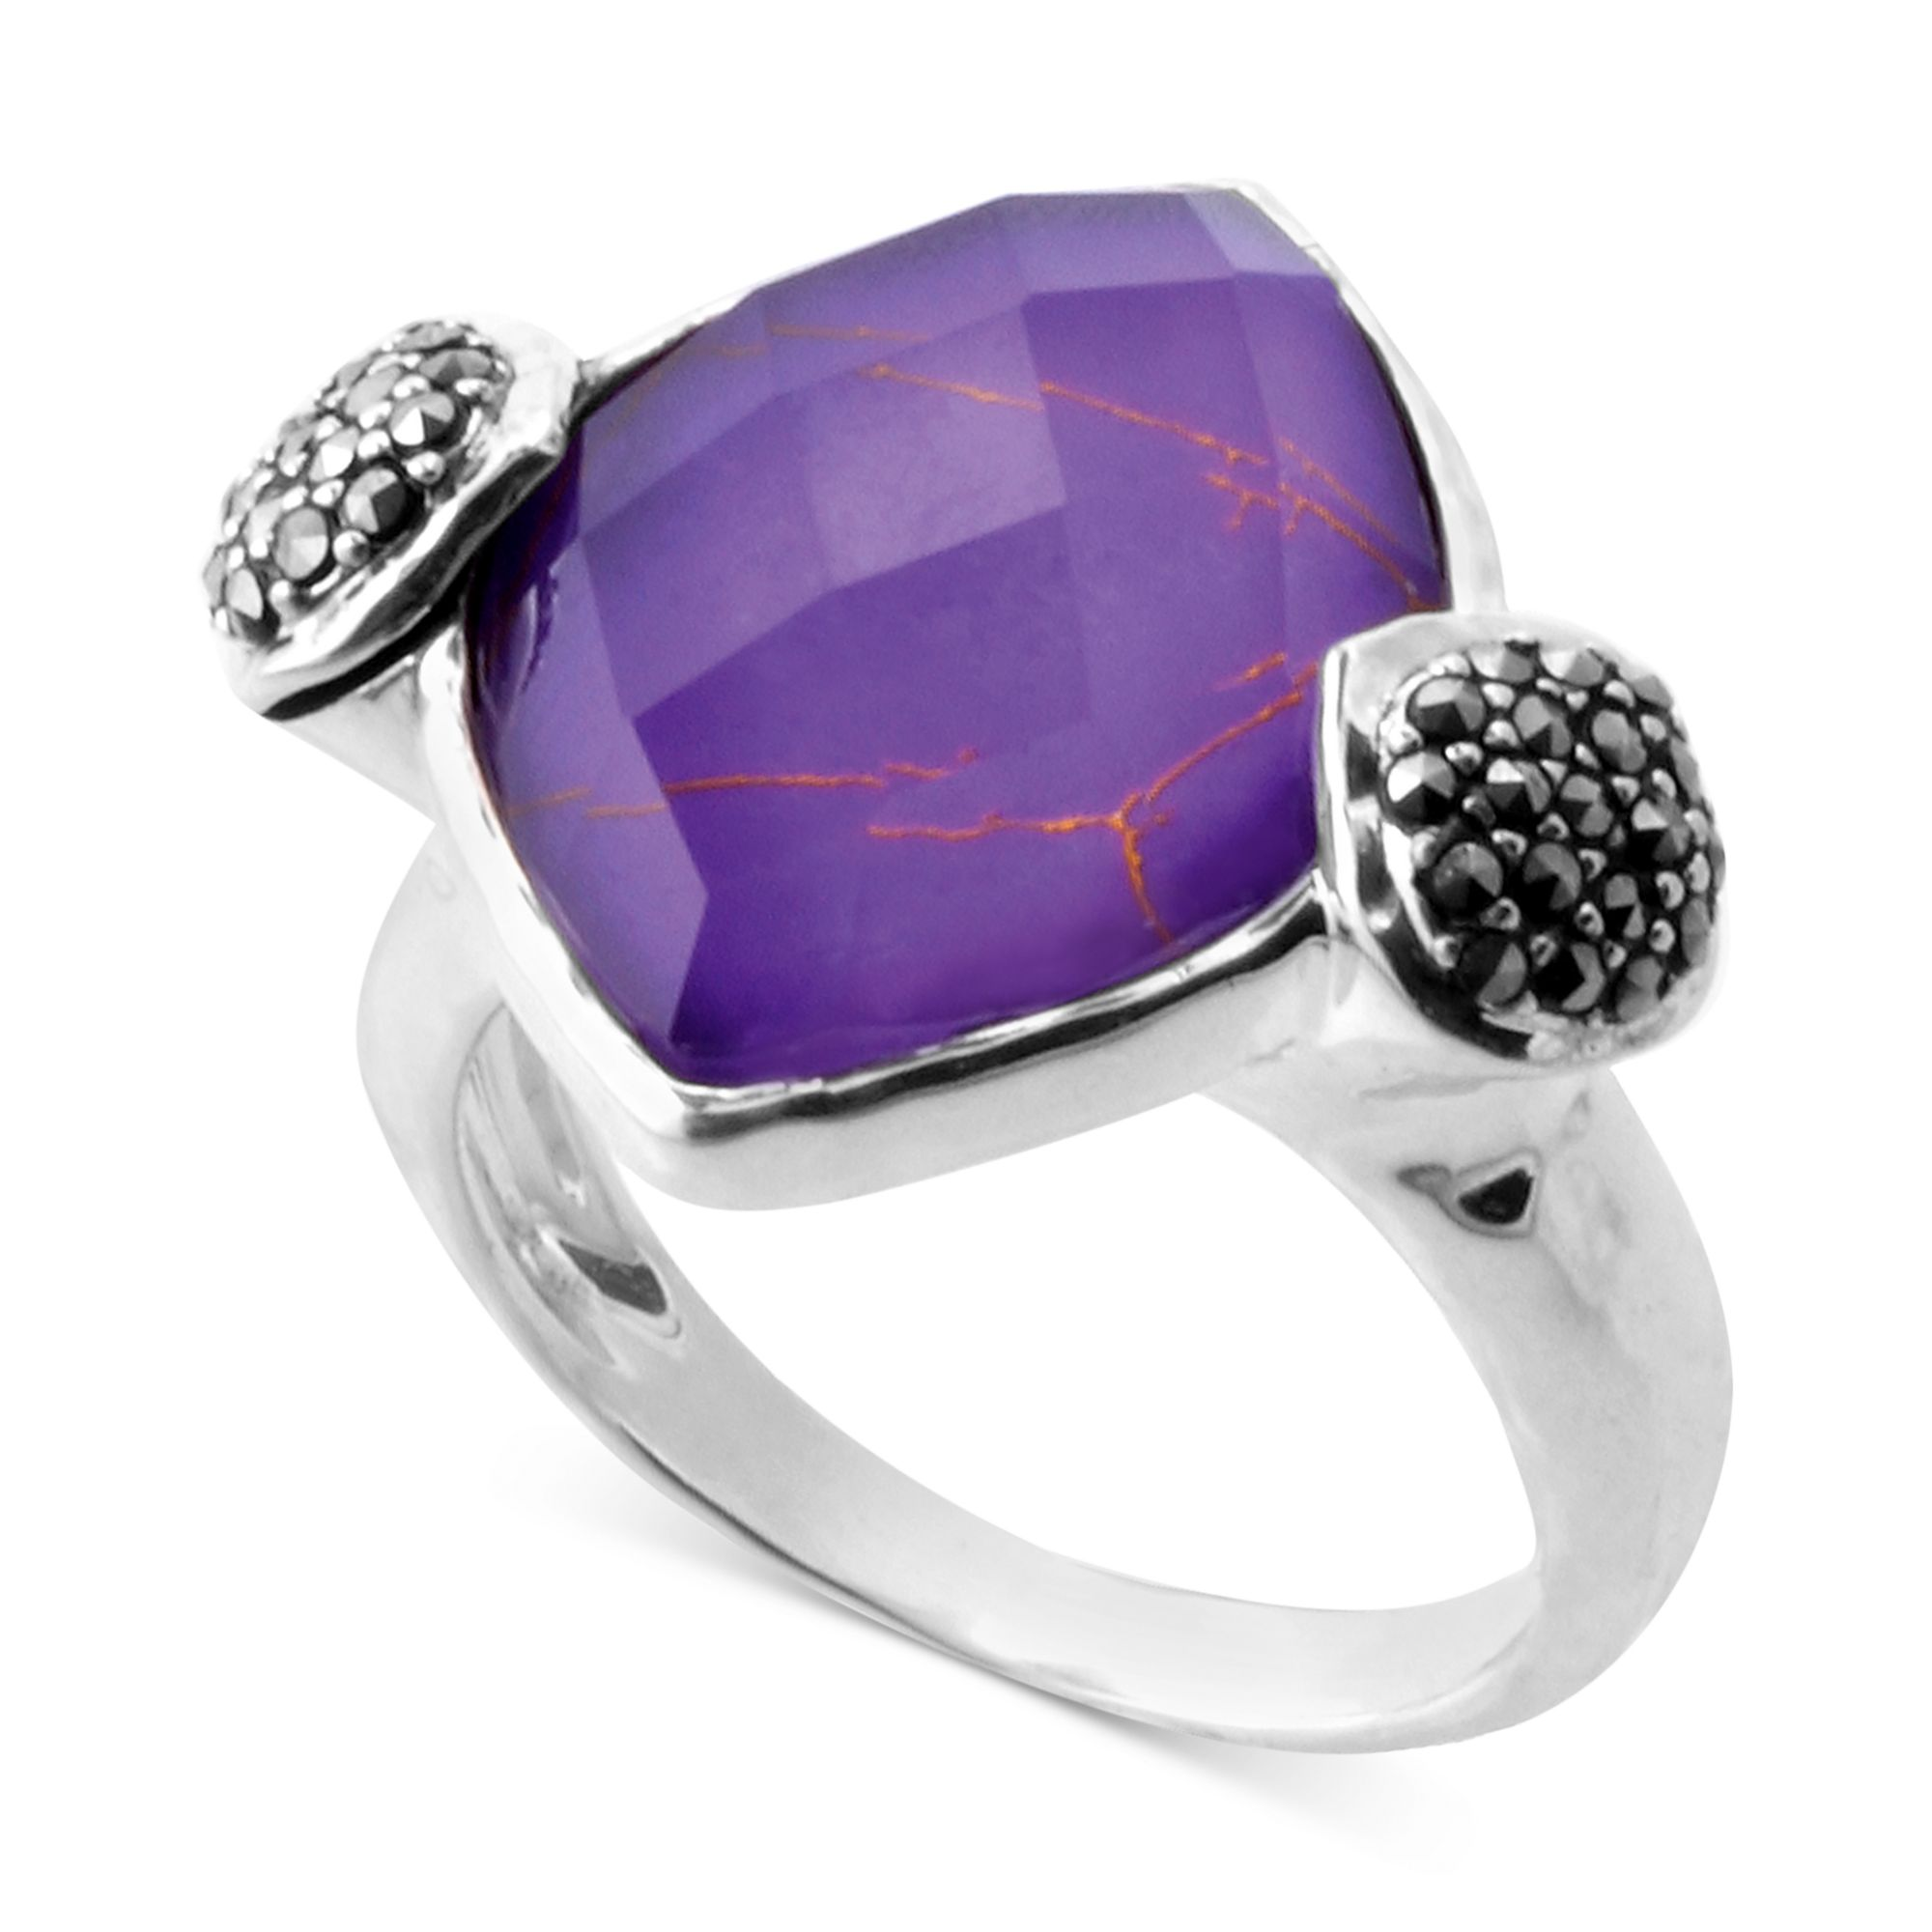 judith sterling silver imitation purple turquoise 923